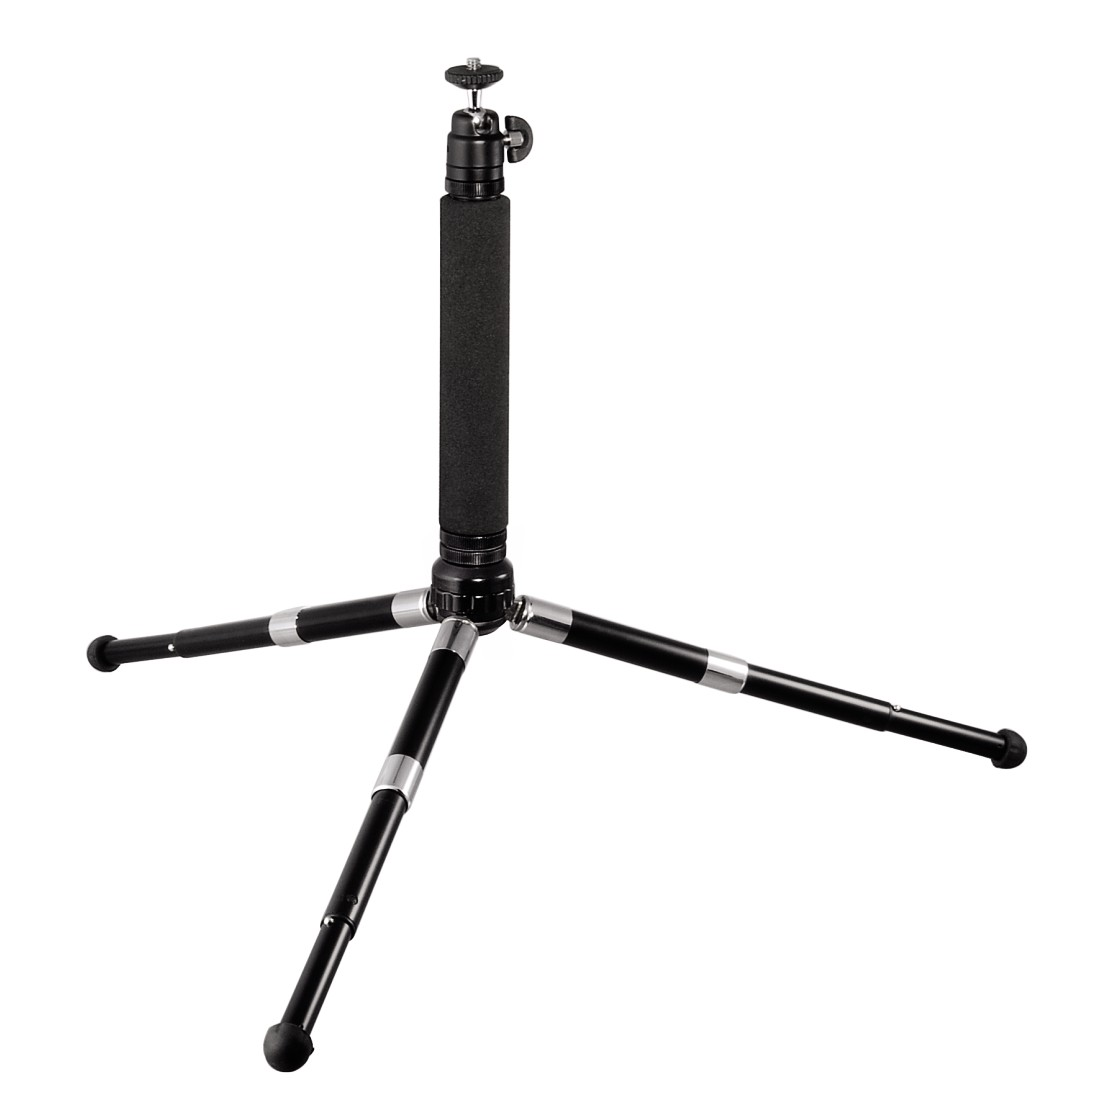 abx4 High-Res Image4 - Hama, Traveller Multi Table Top Tripod, with Removable Telescopic Tube